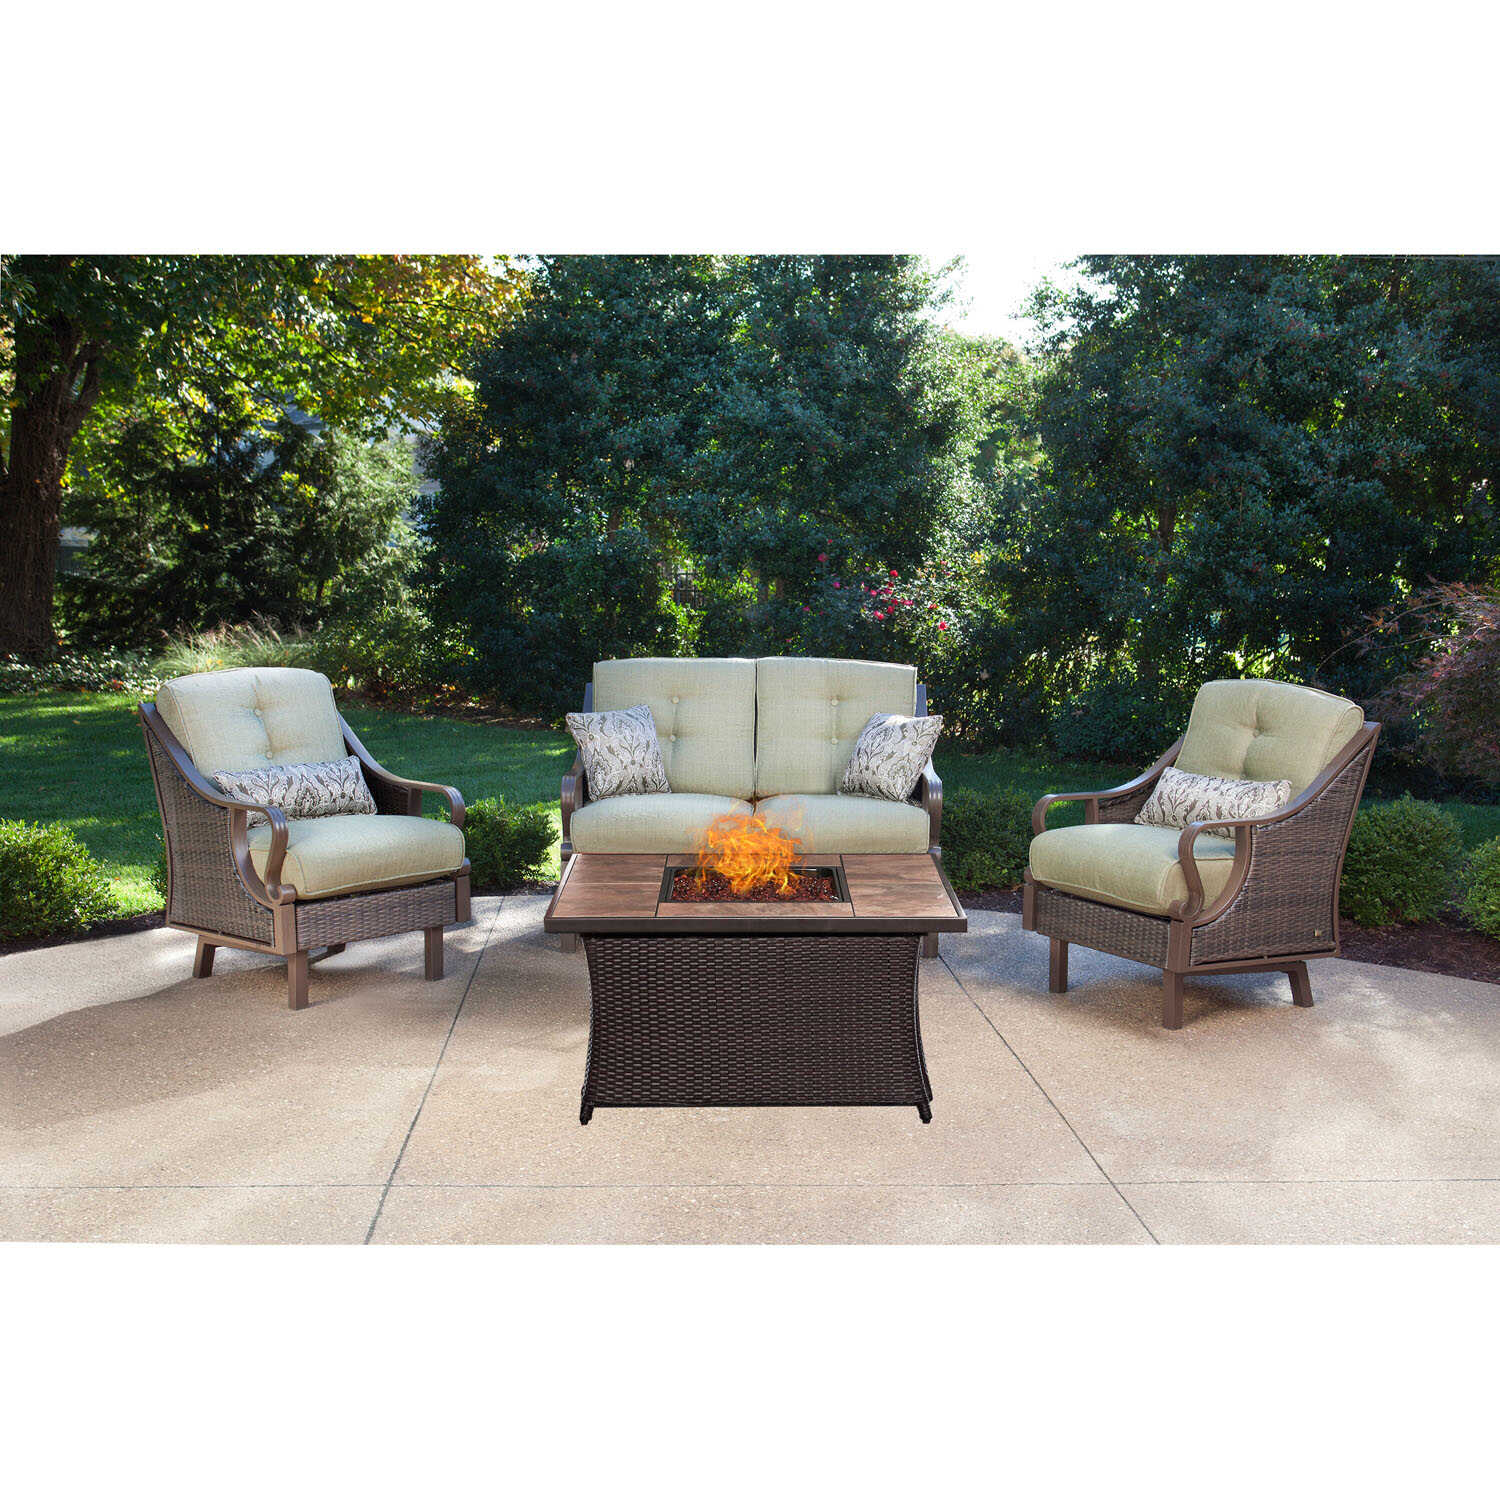 Hanover  Ventura  4 pc. Cocoa Stone  Steel  Tile  Firepit Set  Vinatage Meadow